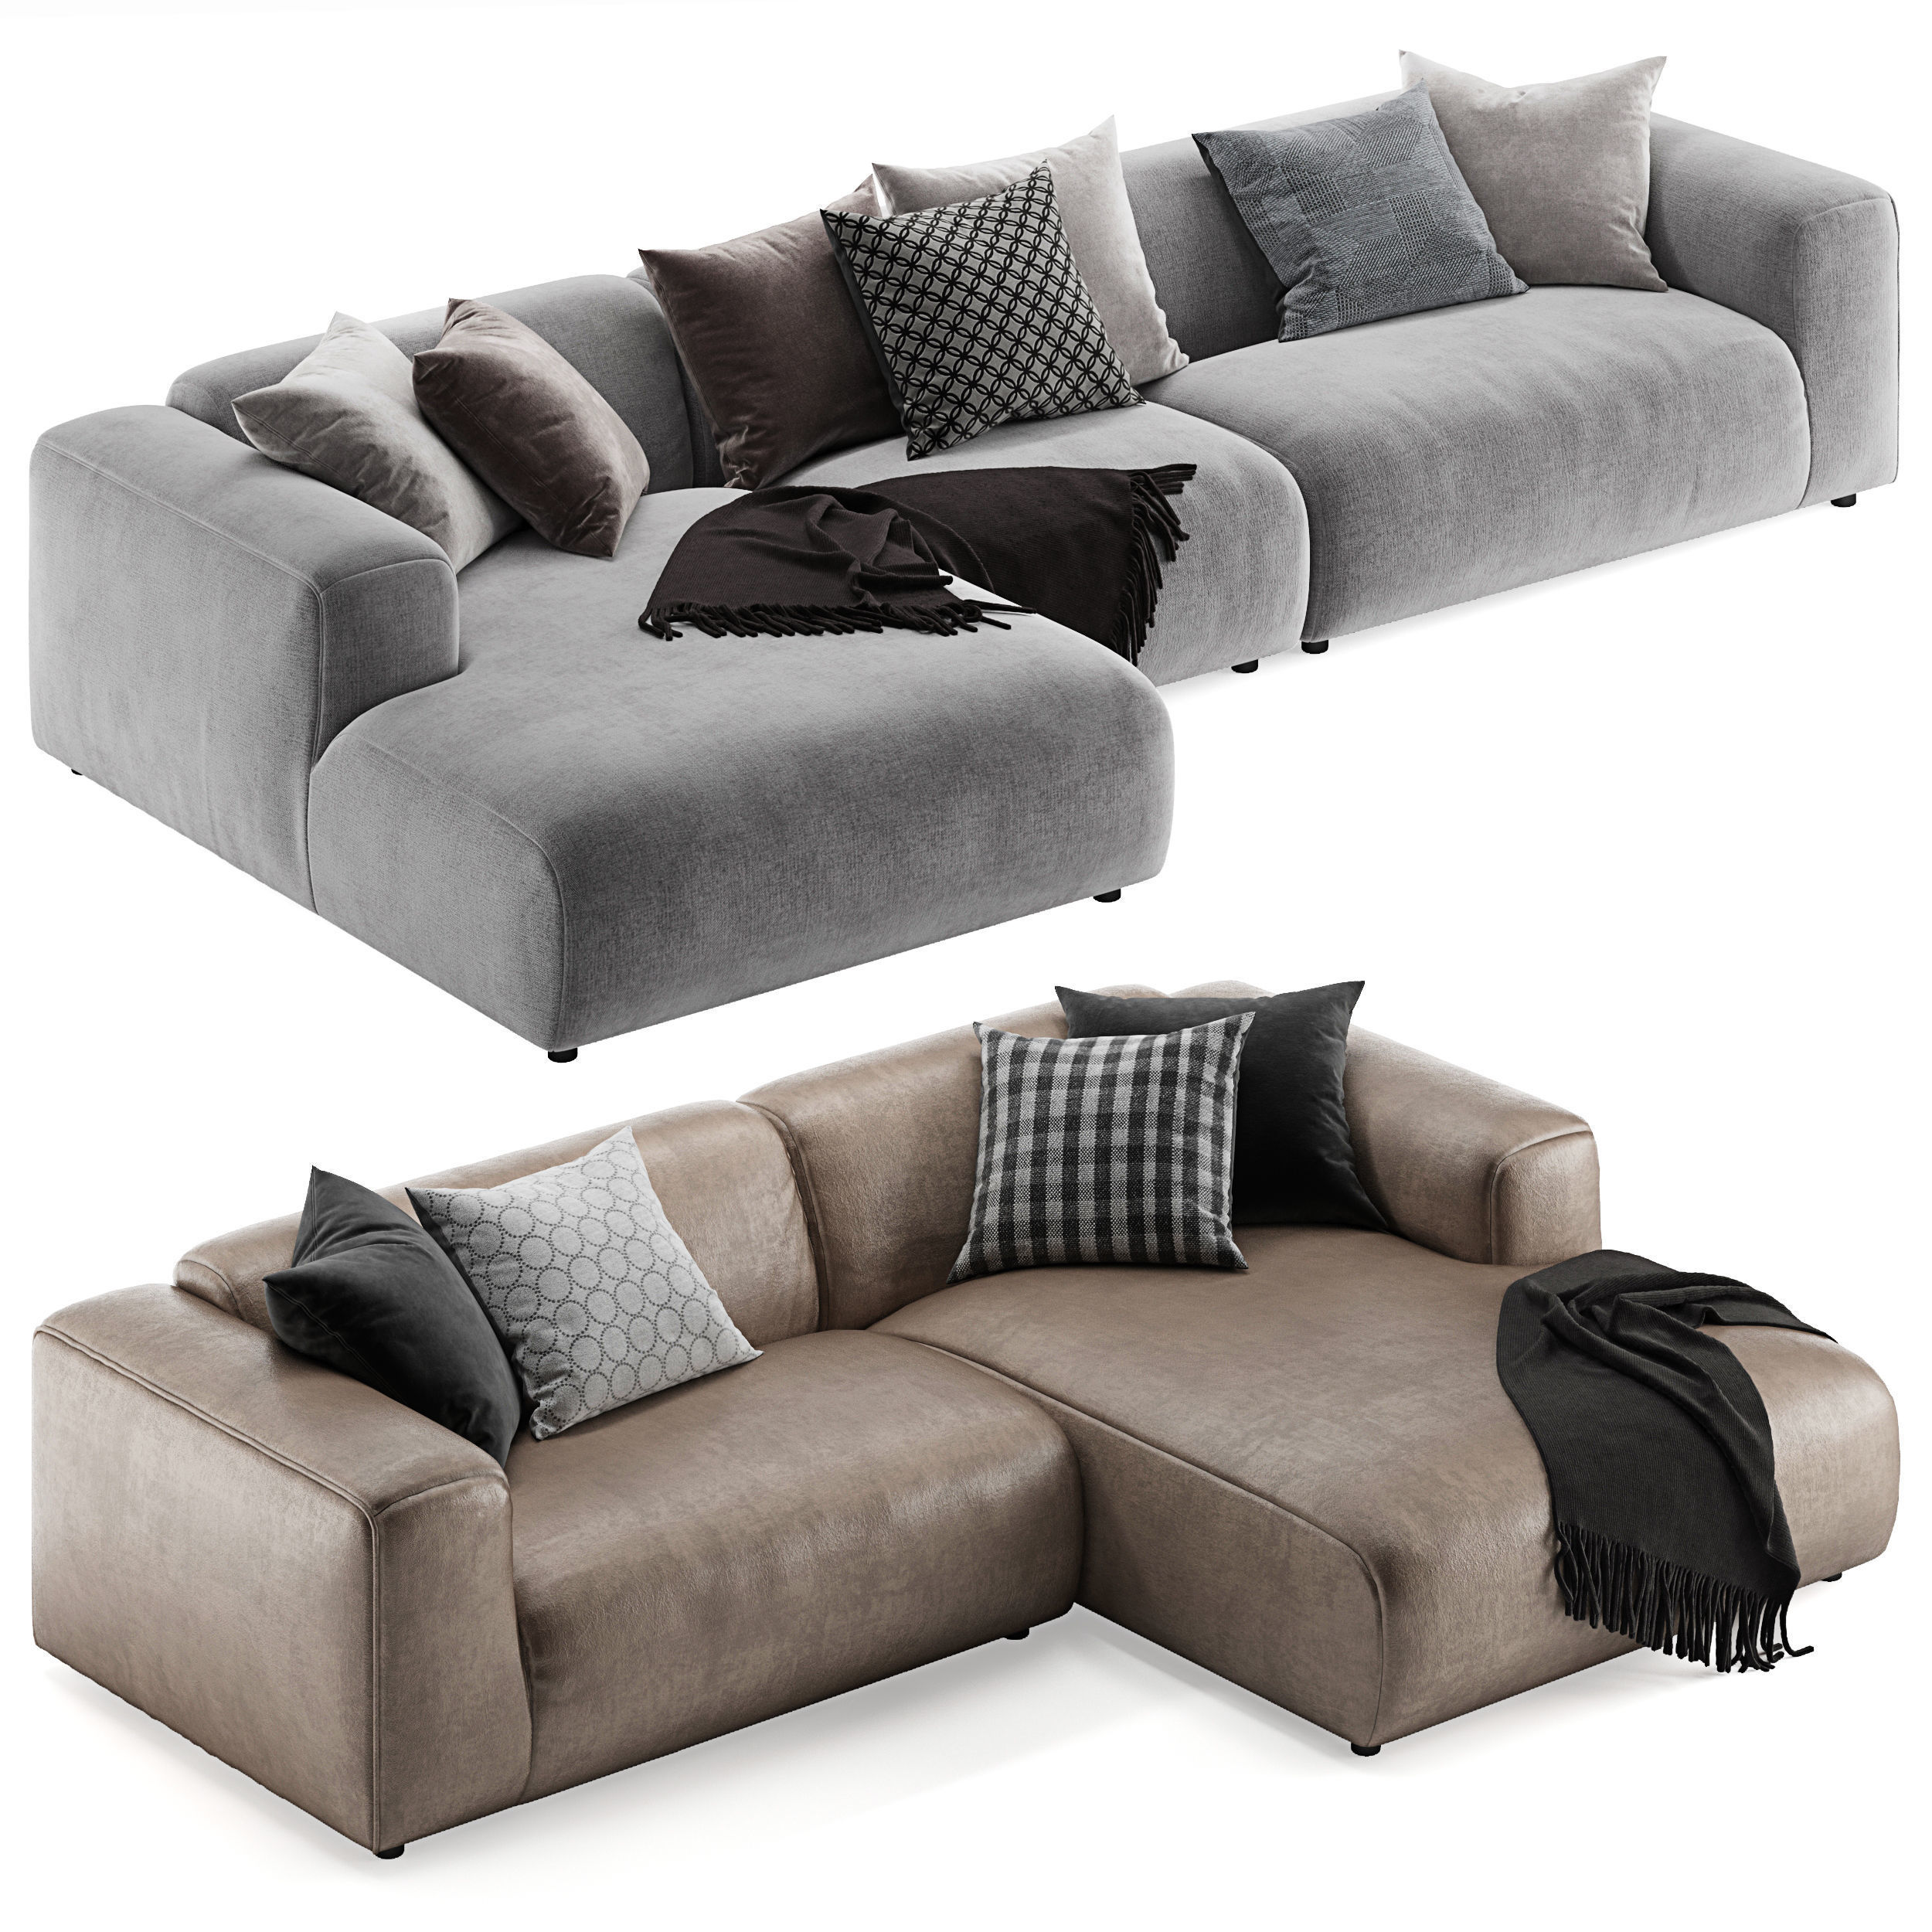 Freistil Sofa Rolf Benz Freistil 187 L Sofa 3d Model | Cgtrader